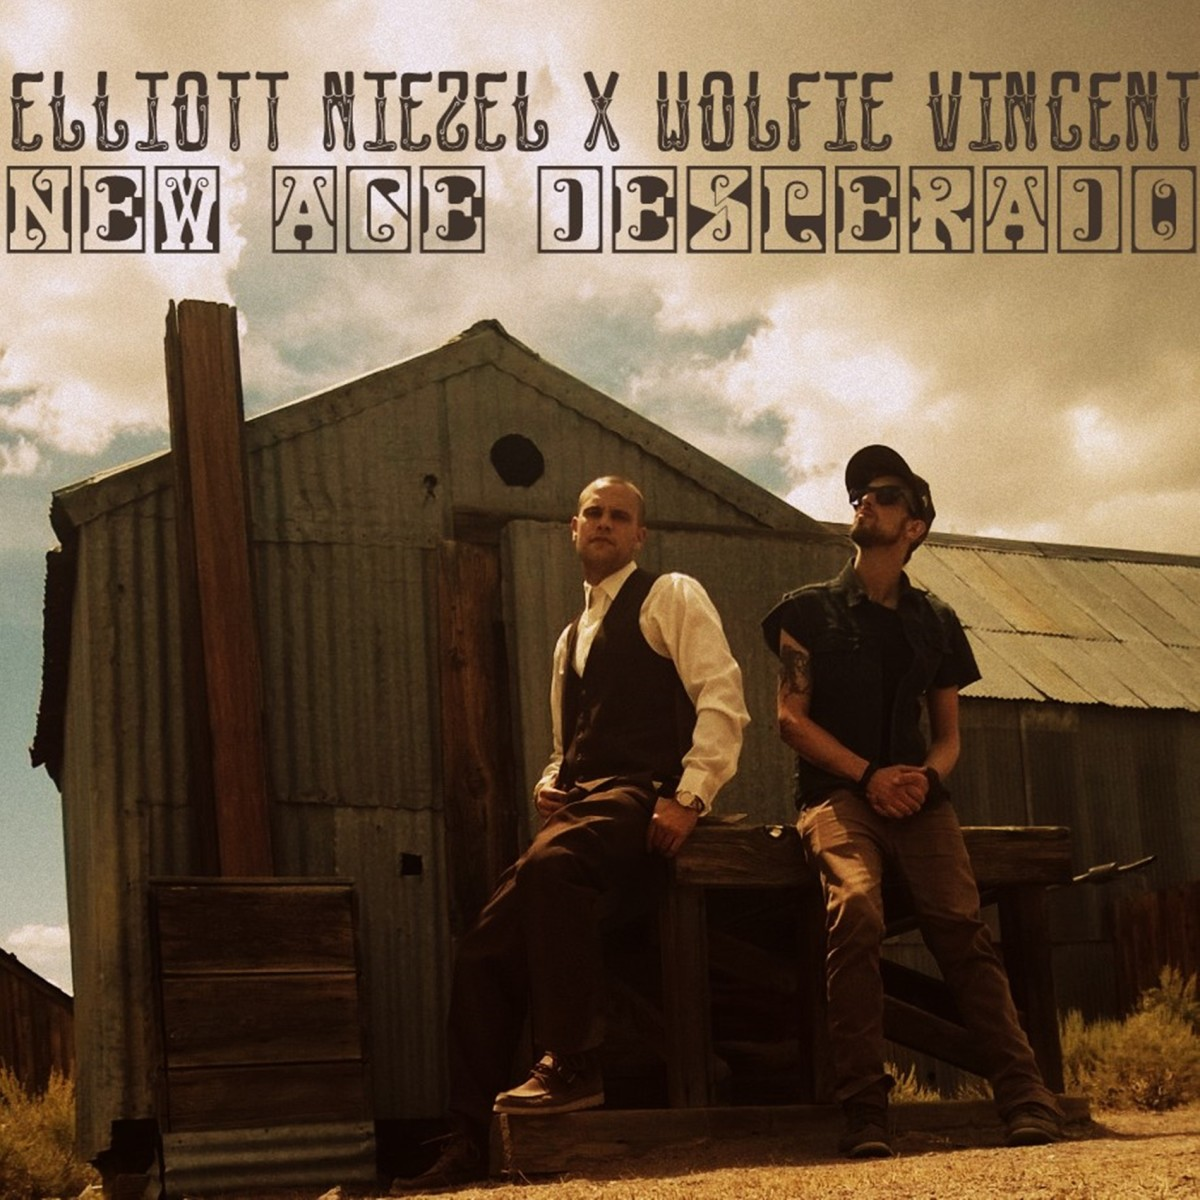 Elliott Niezel x Wolfie Vincent - New Age Desperado [Artwork]